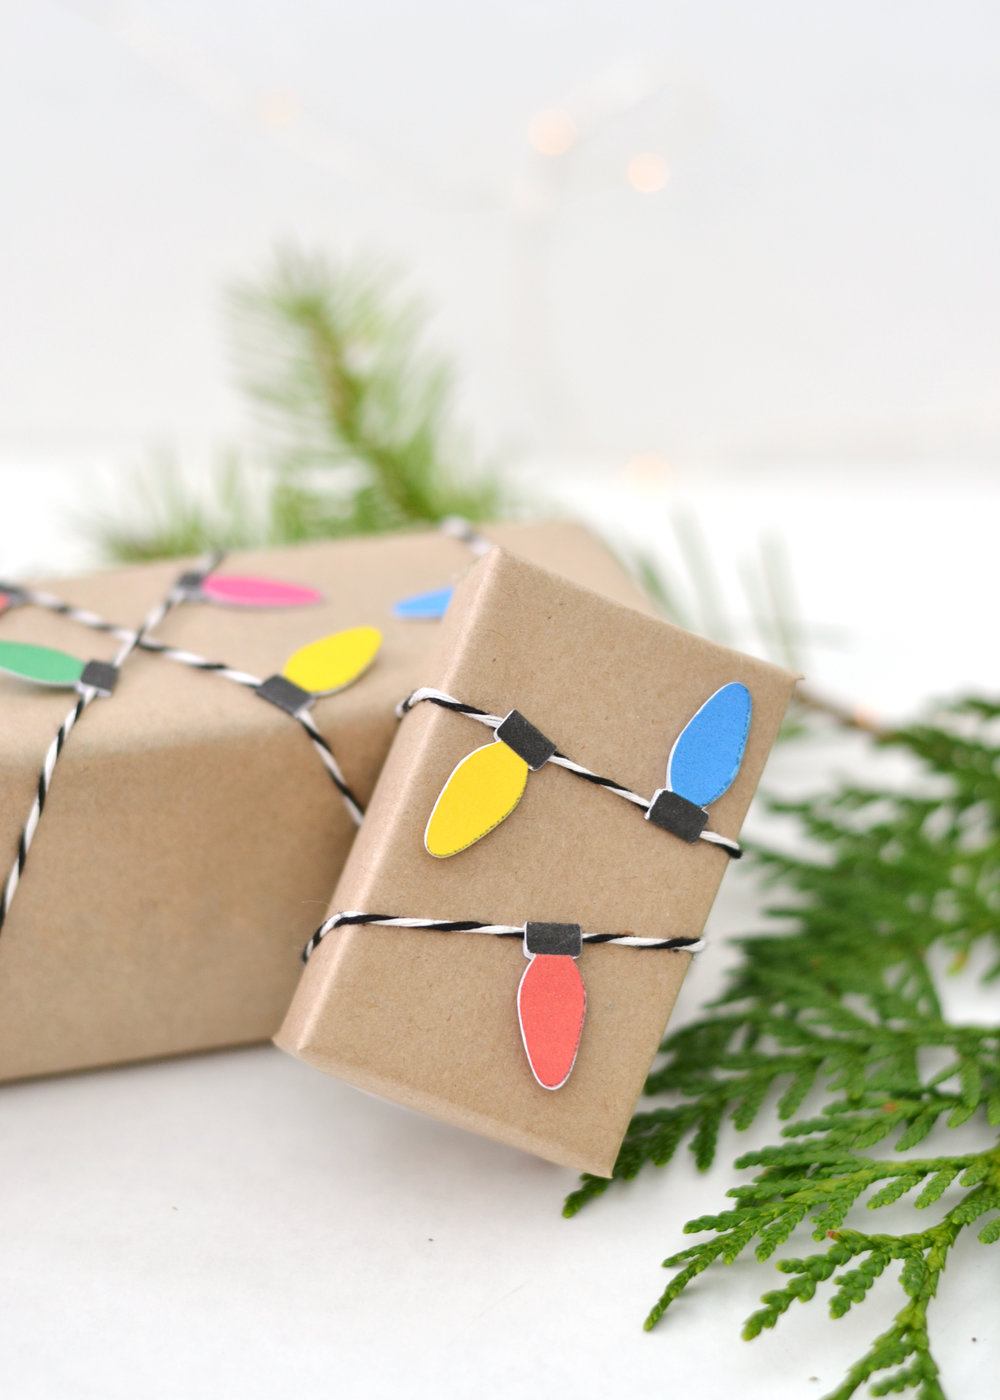 Mini Christmas light wrapping paper DIY wrapping ideas with Cricut | boxwoodavenue.com